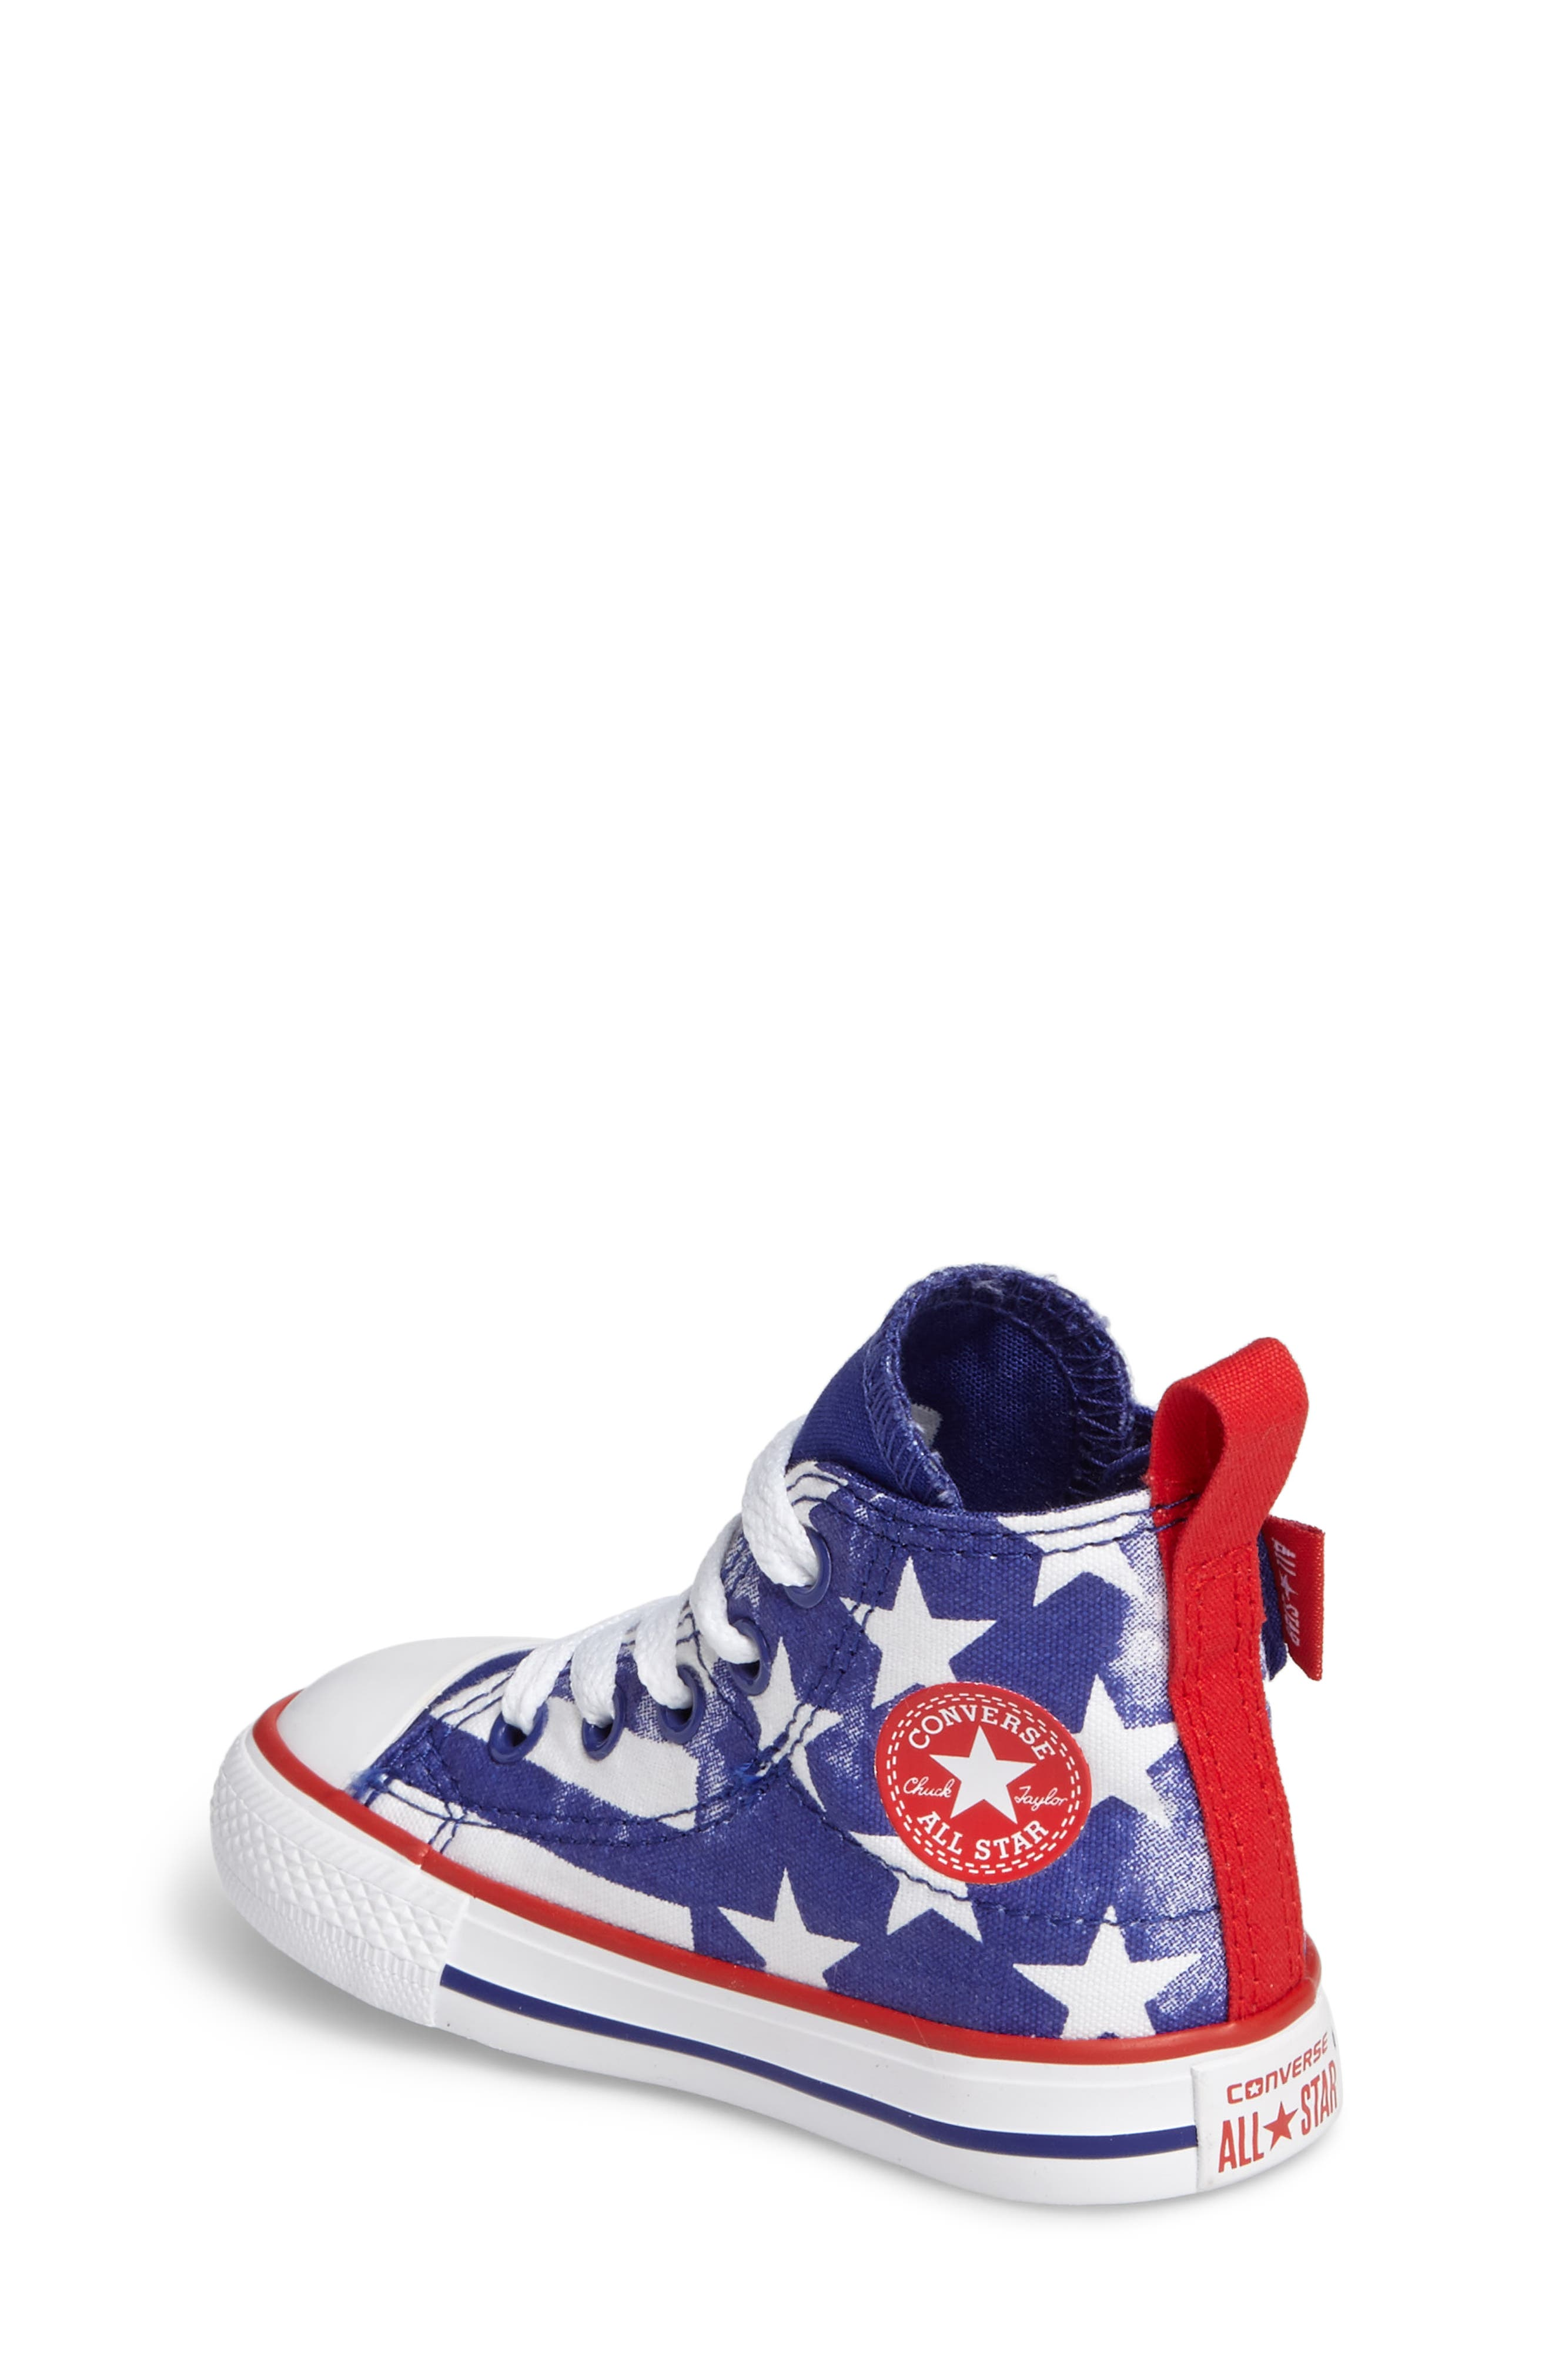 Chuck Taylor<sup>®</sup> All Star<sup>®</sup> 'Simple Step' High Top Sneaker,                             Alternate thumbnail 2, color,                             400